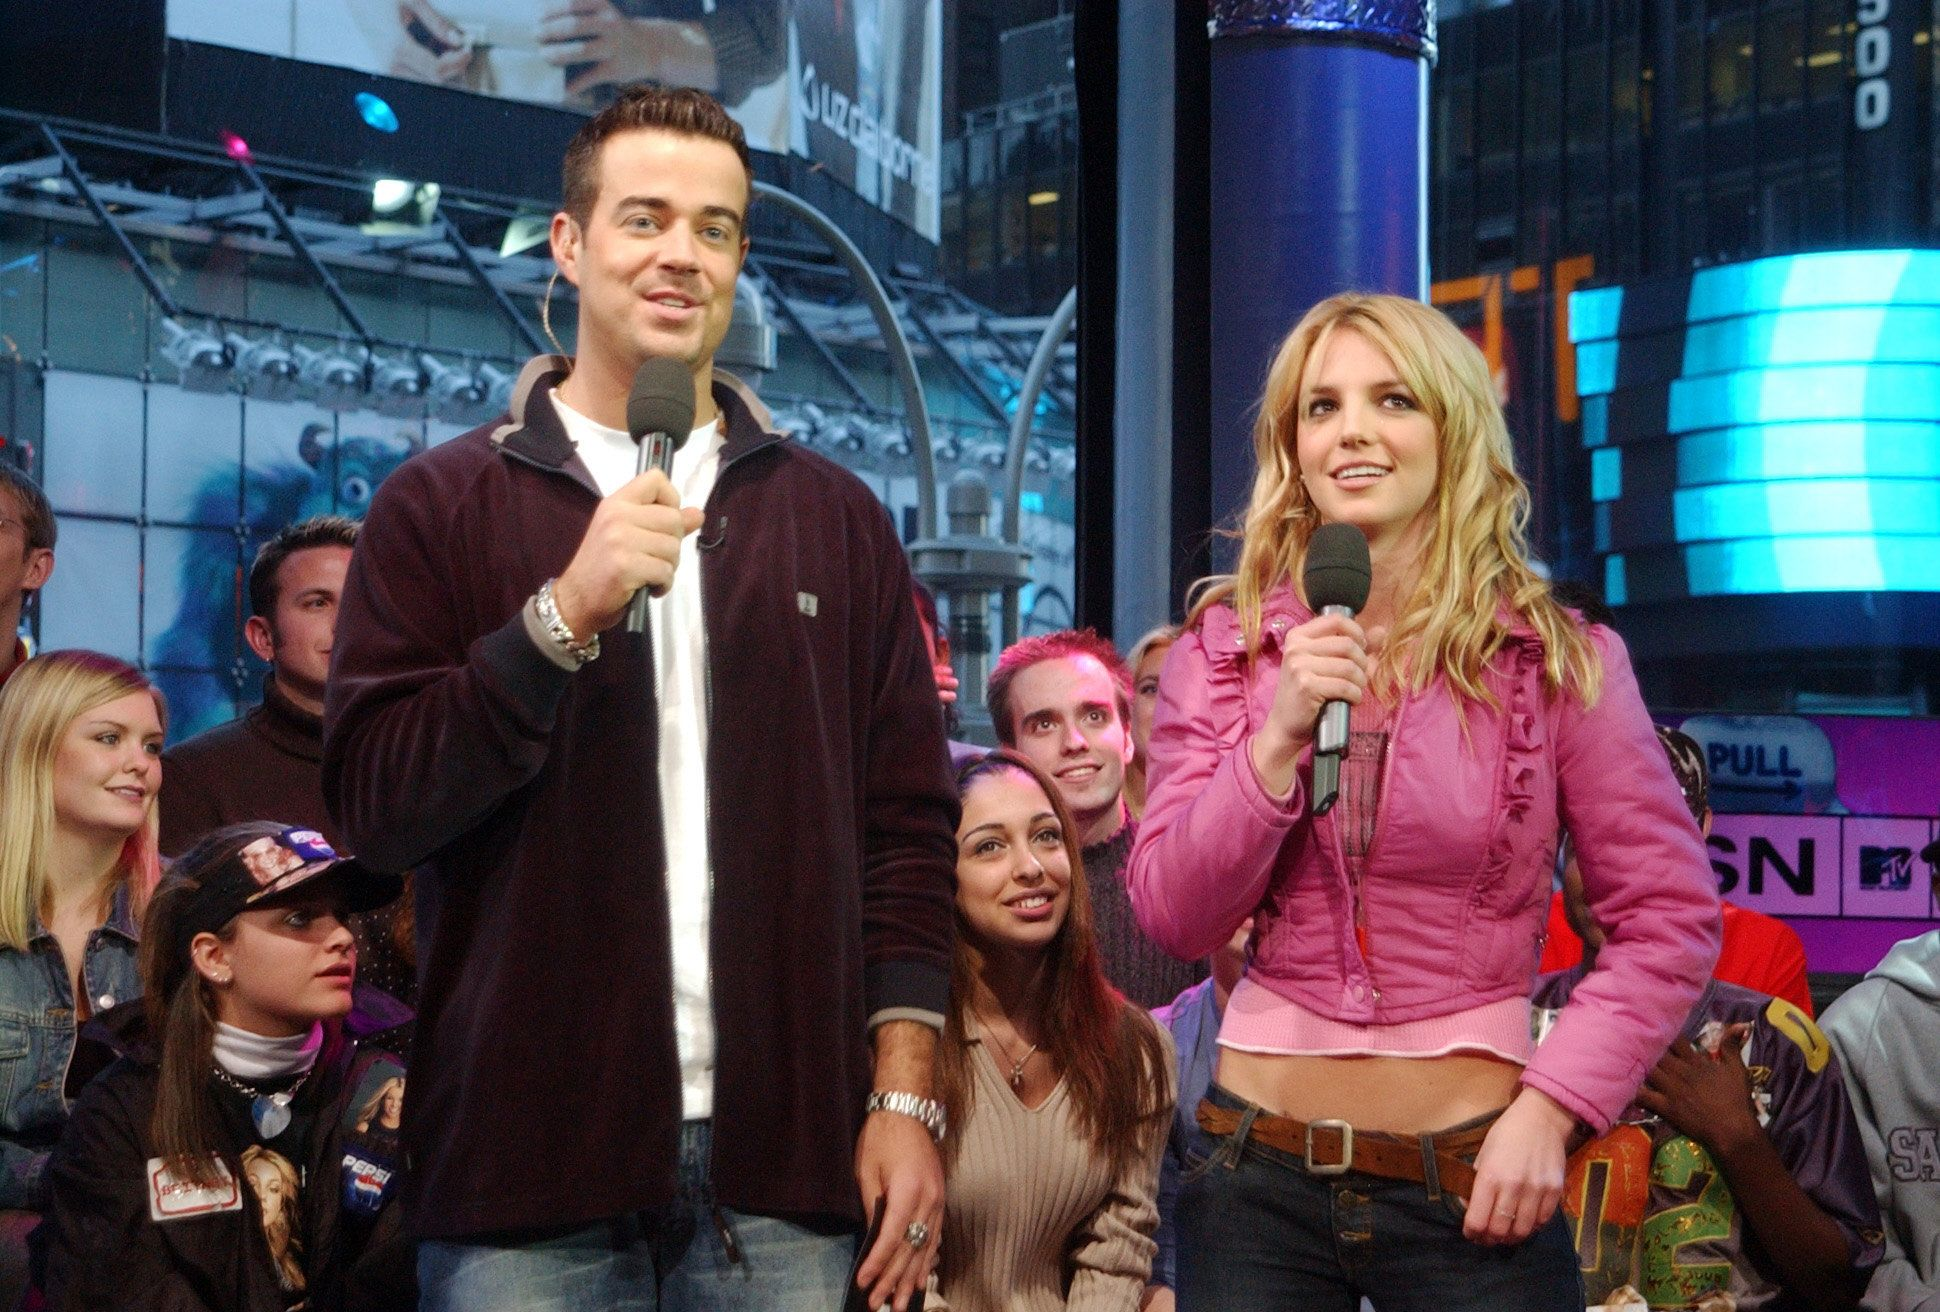 Carson Daly & Britney Spears (Photo by KMazur/WireImage)